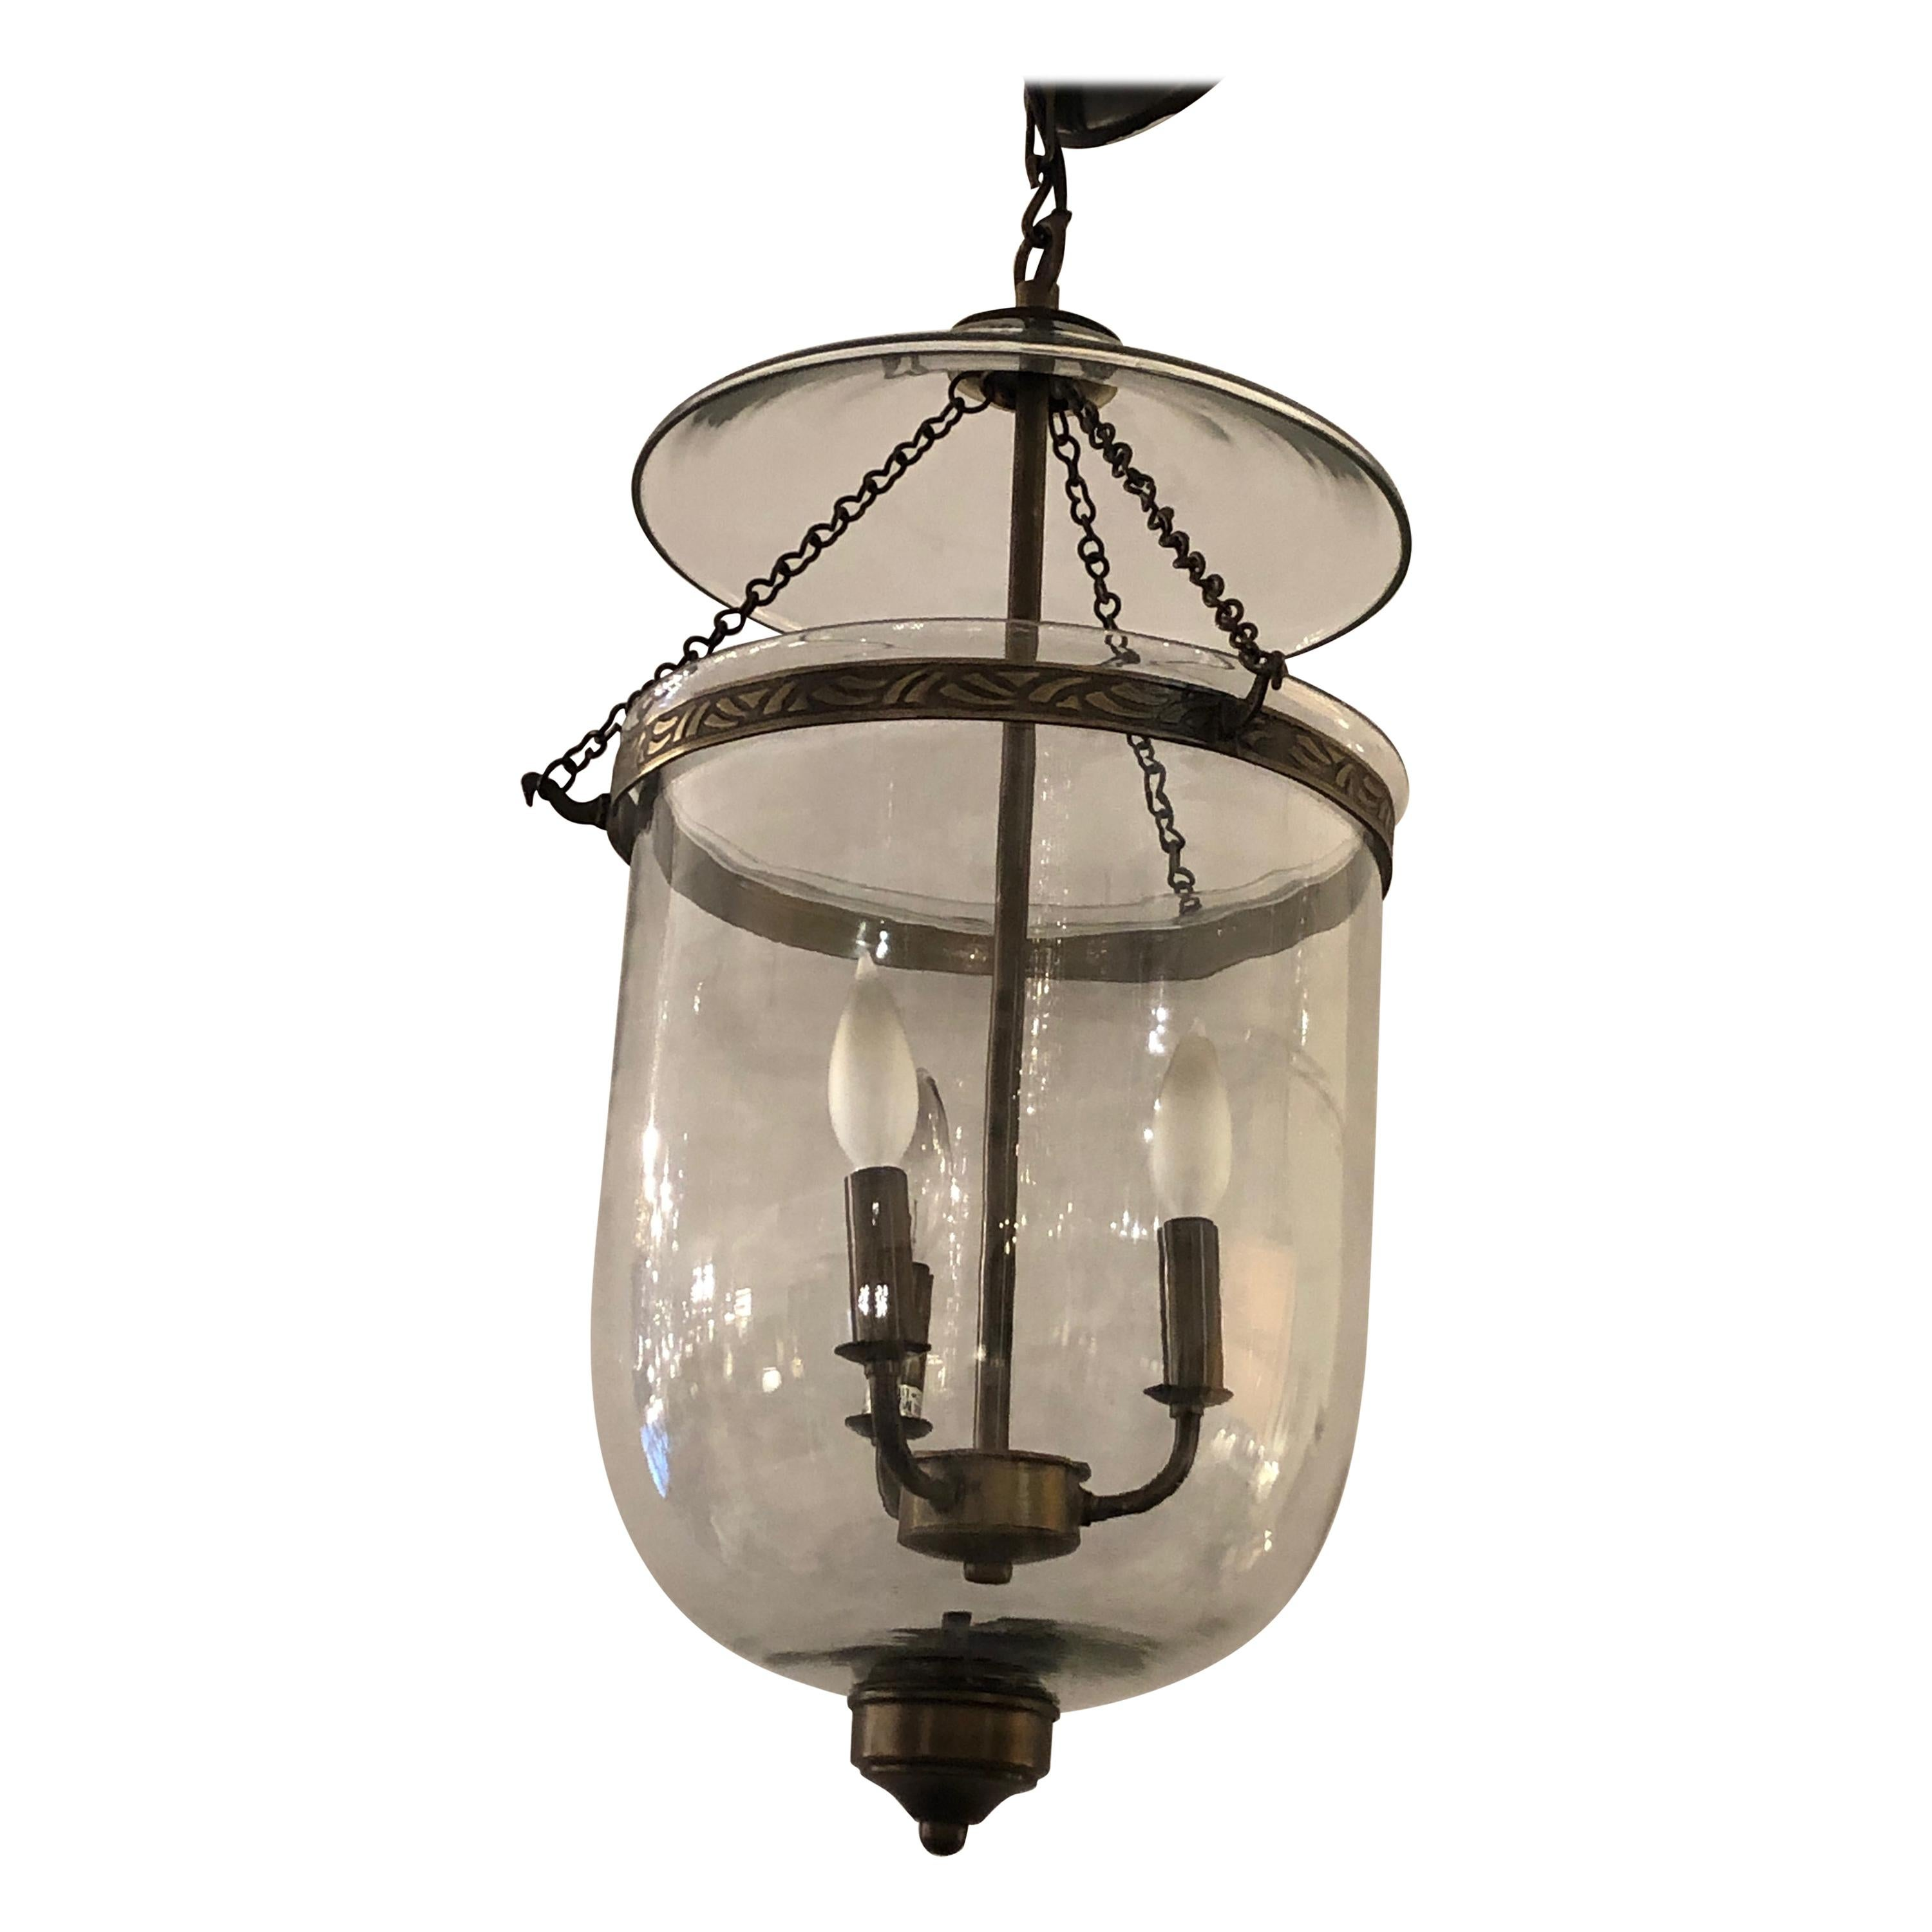 Large Bell Glass Lantern Chandelier Pendant with Bronze Finish